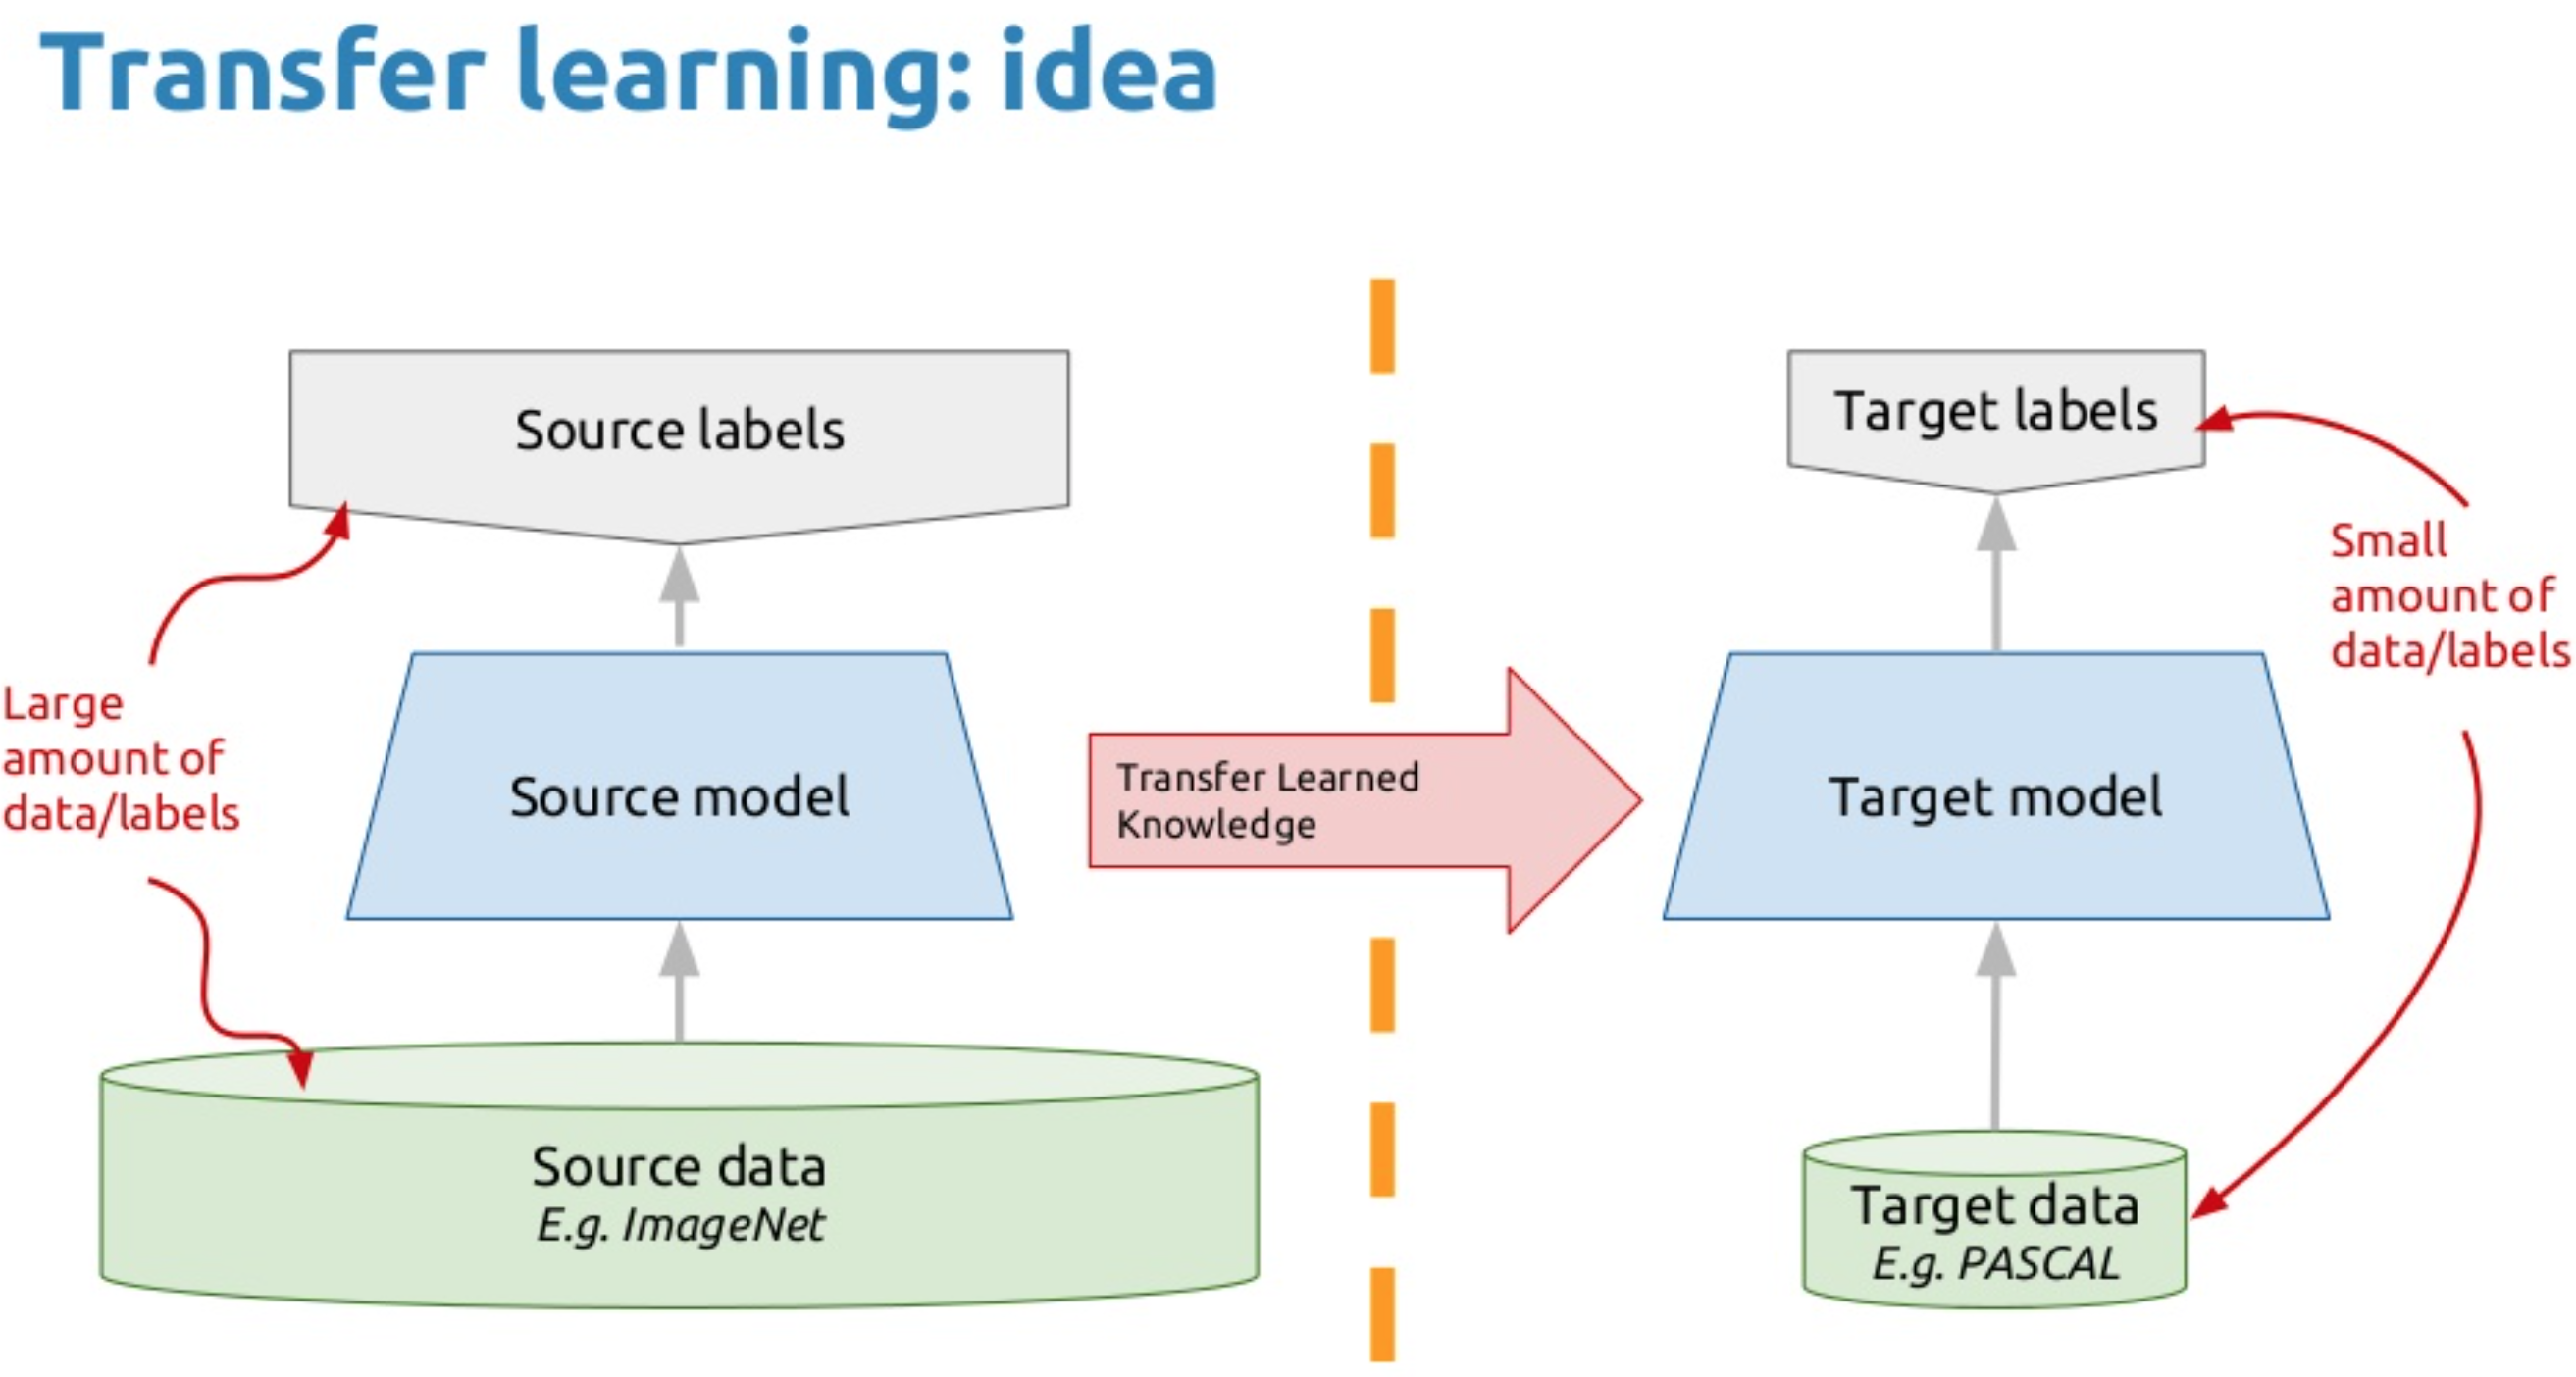 Graphic example of transfer learning in machine learning.